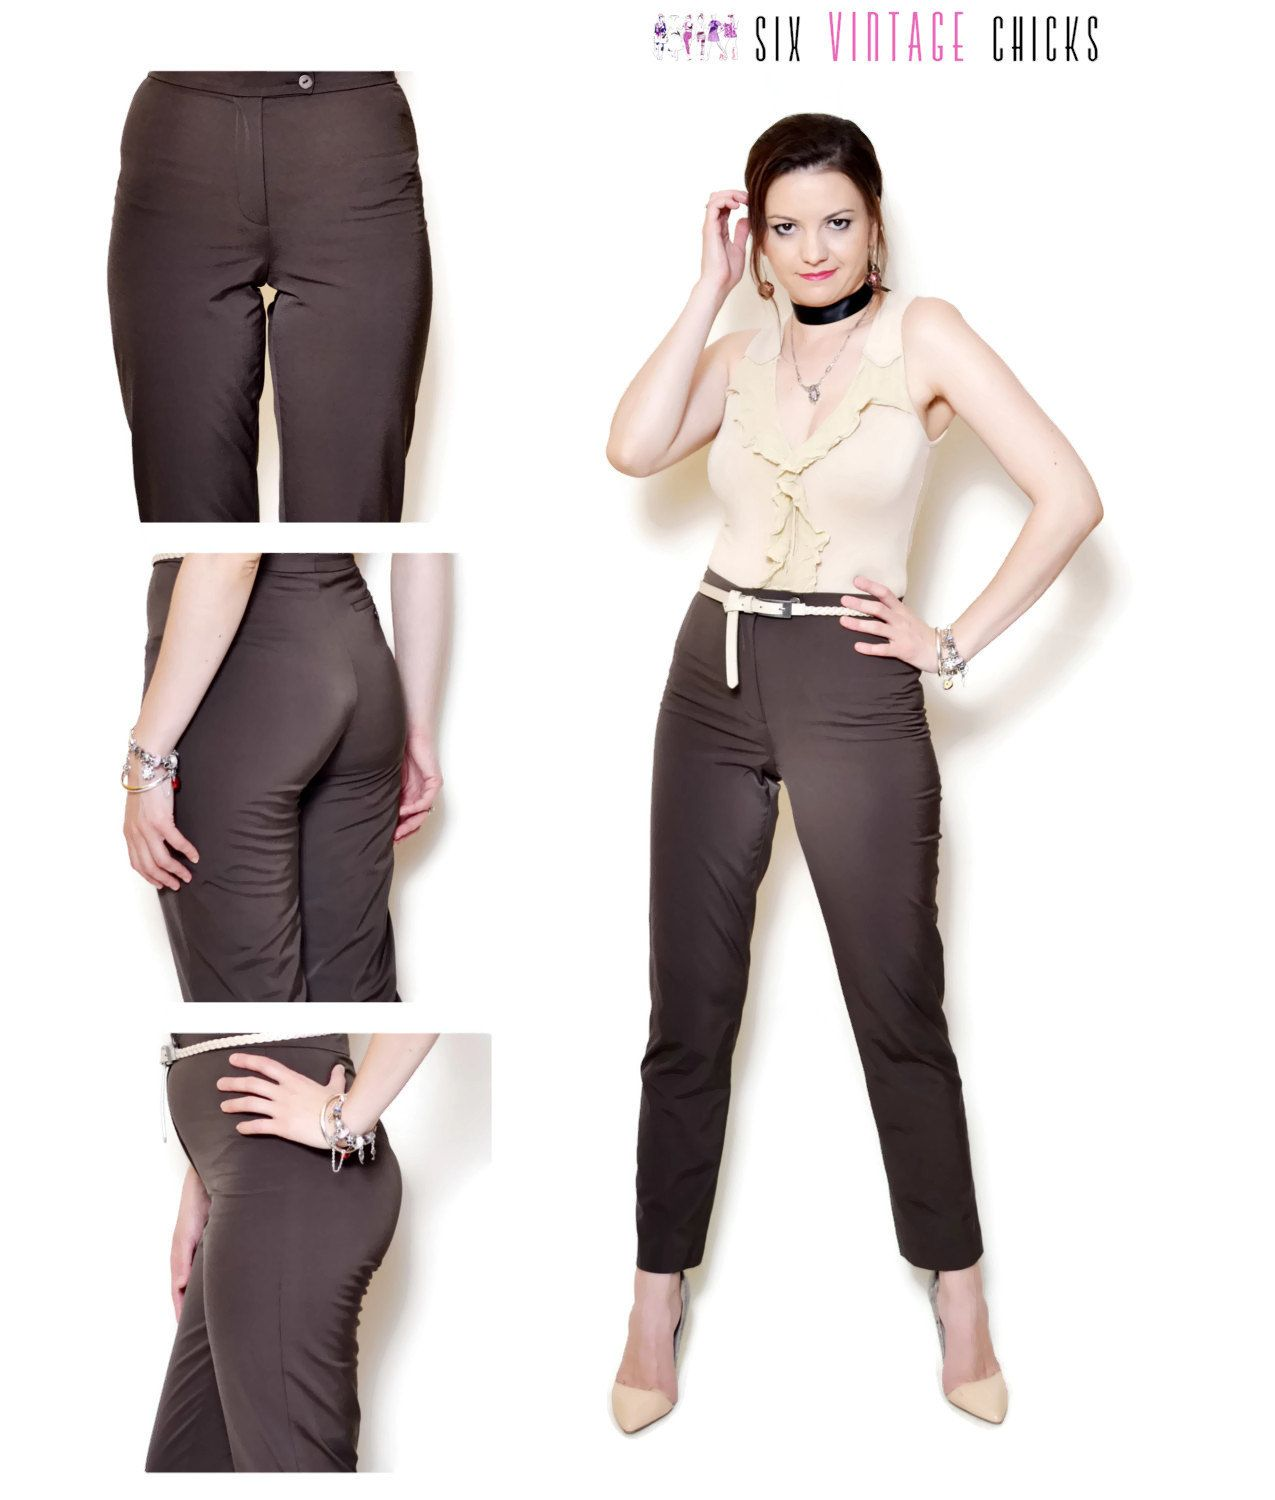 6eb615f53c53d cigarette pants women 90s clothing boho pants formal high waisted vintage  Minimalist Brown womens Trousers Size Small by SixVintageChicks on Etsy